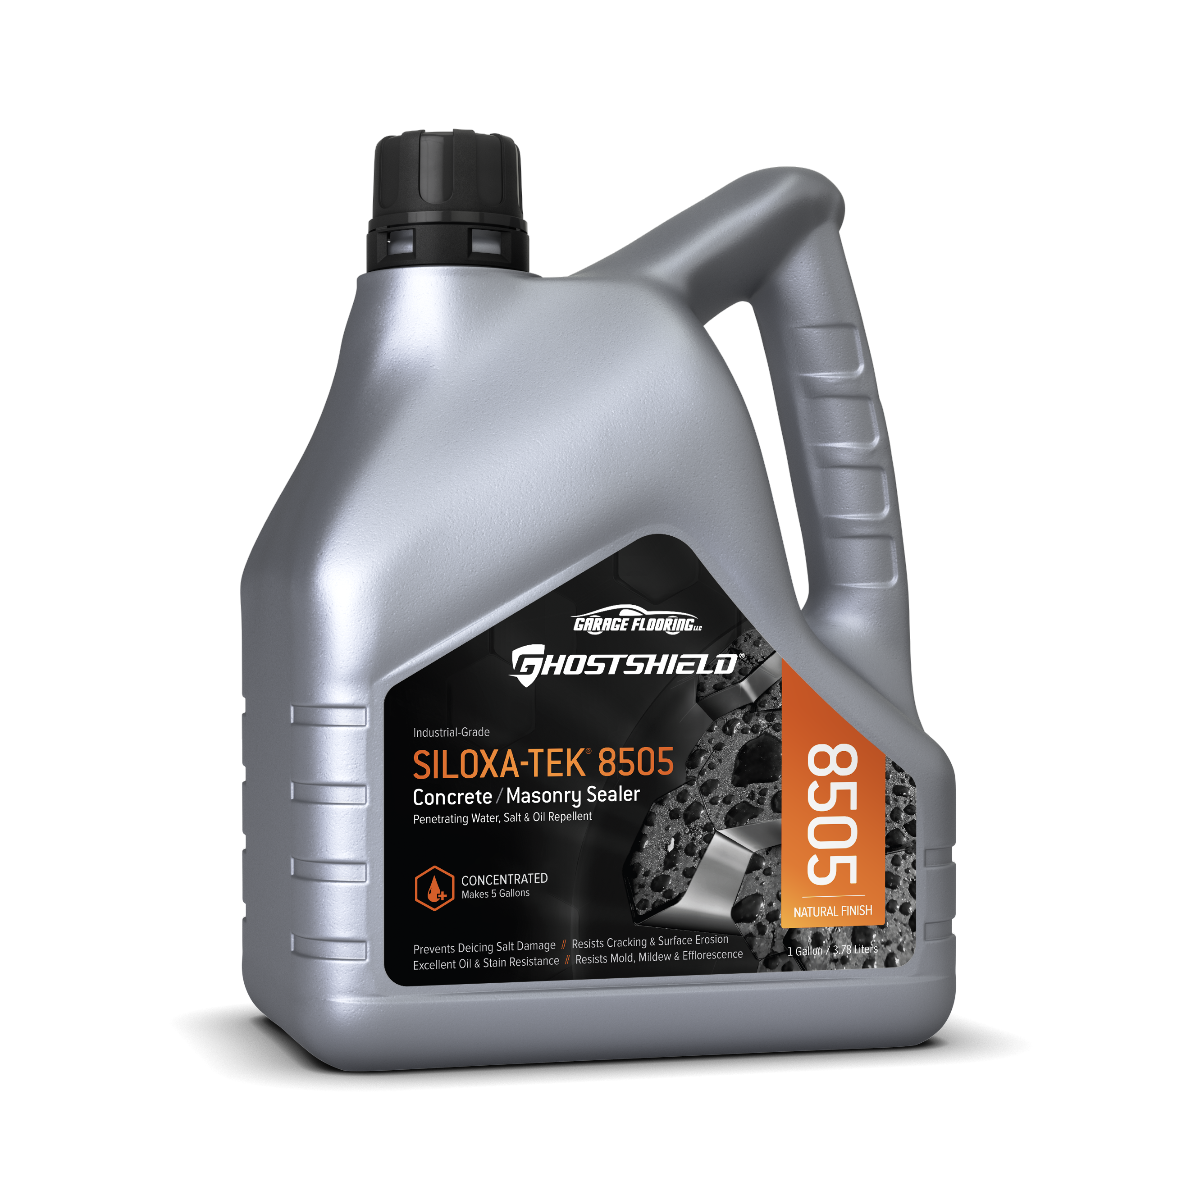 GhostShield Siloxa-Tek 8505 Ultra Concentrate Concrete Sealer / Oil & Water Repellent Makes 5 Gallons